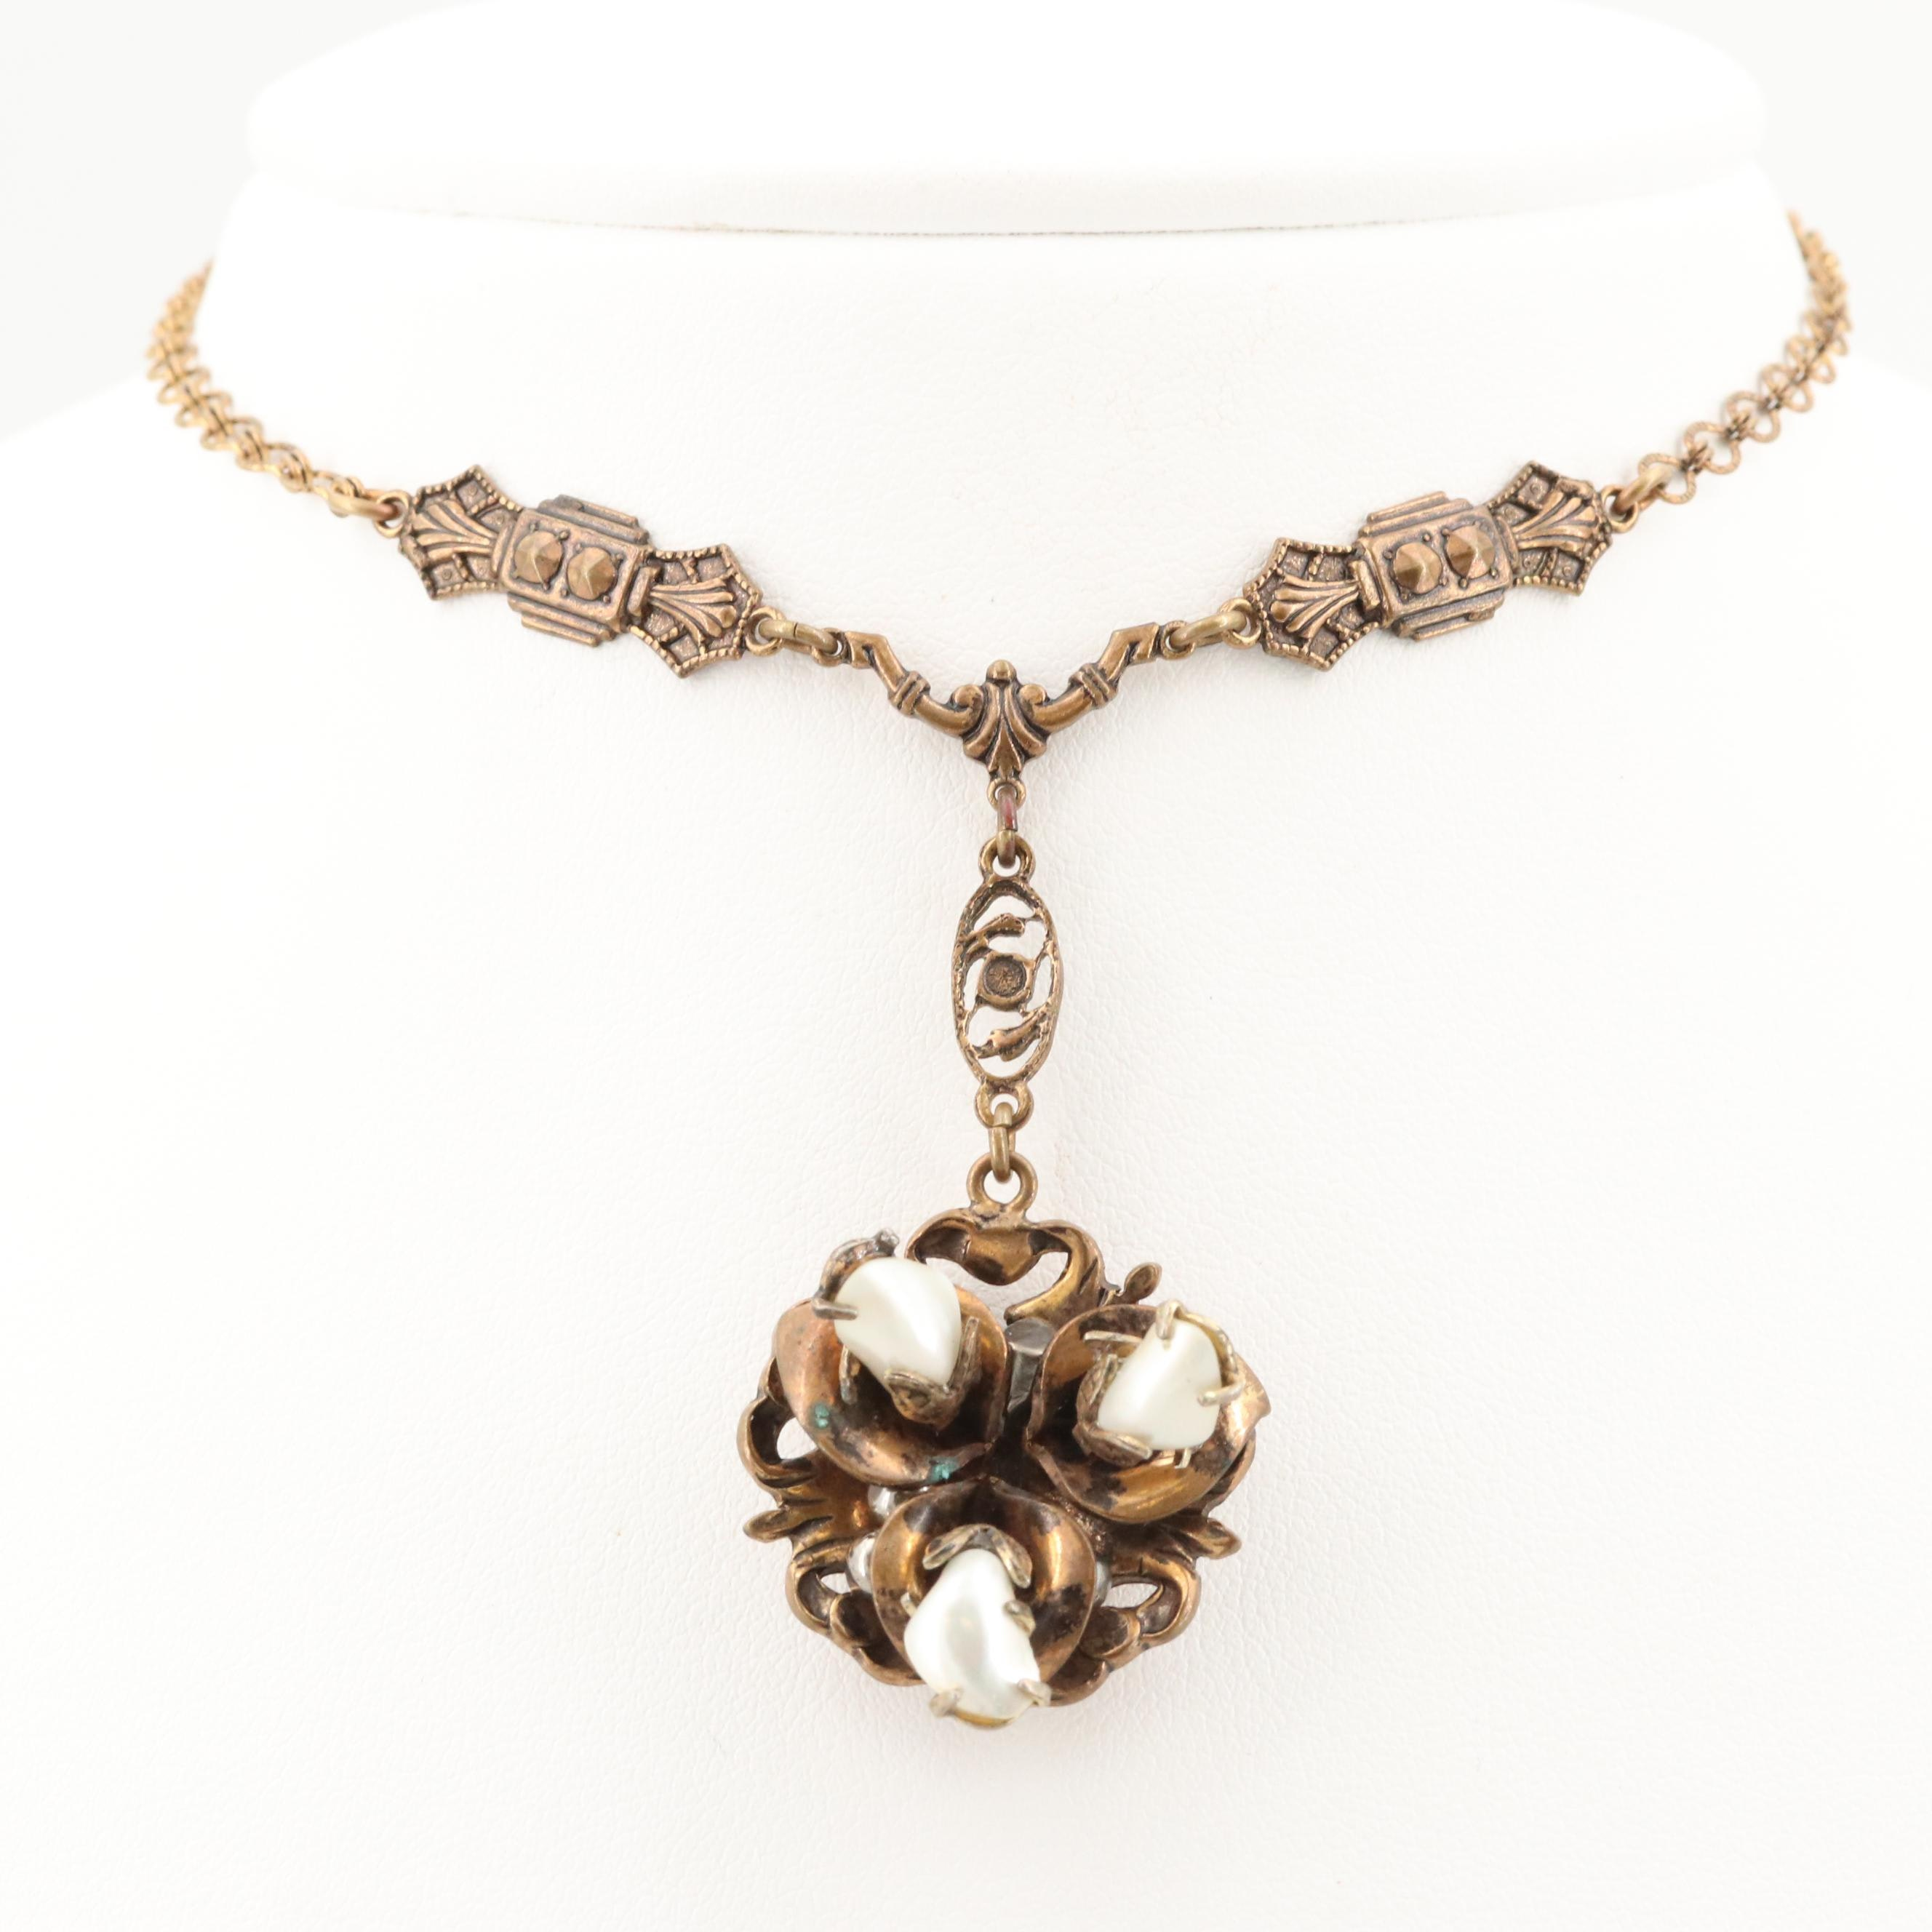 Vintage Gold Tone Shell Necklace